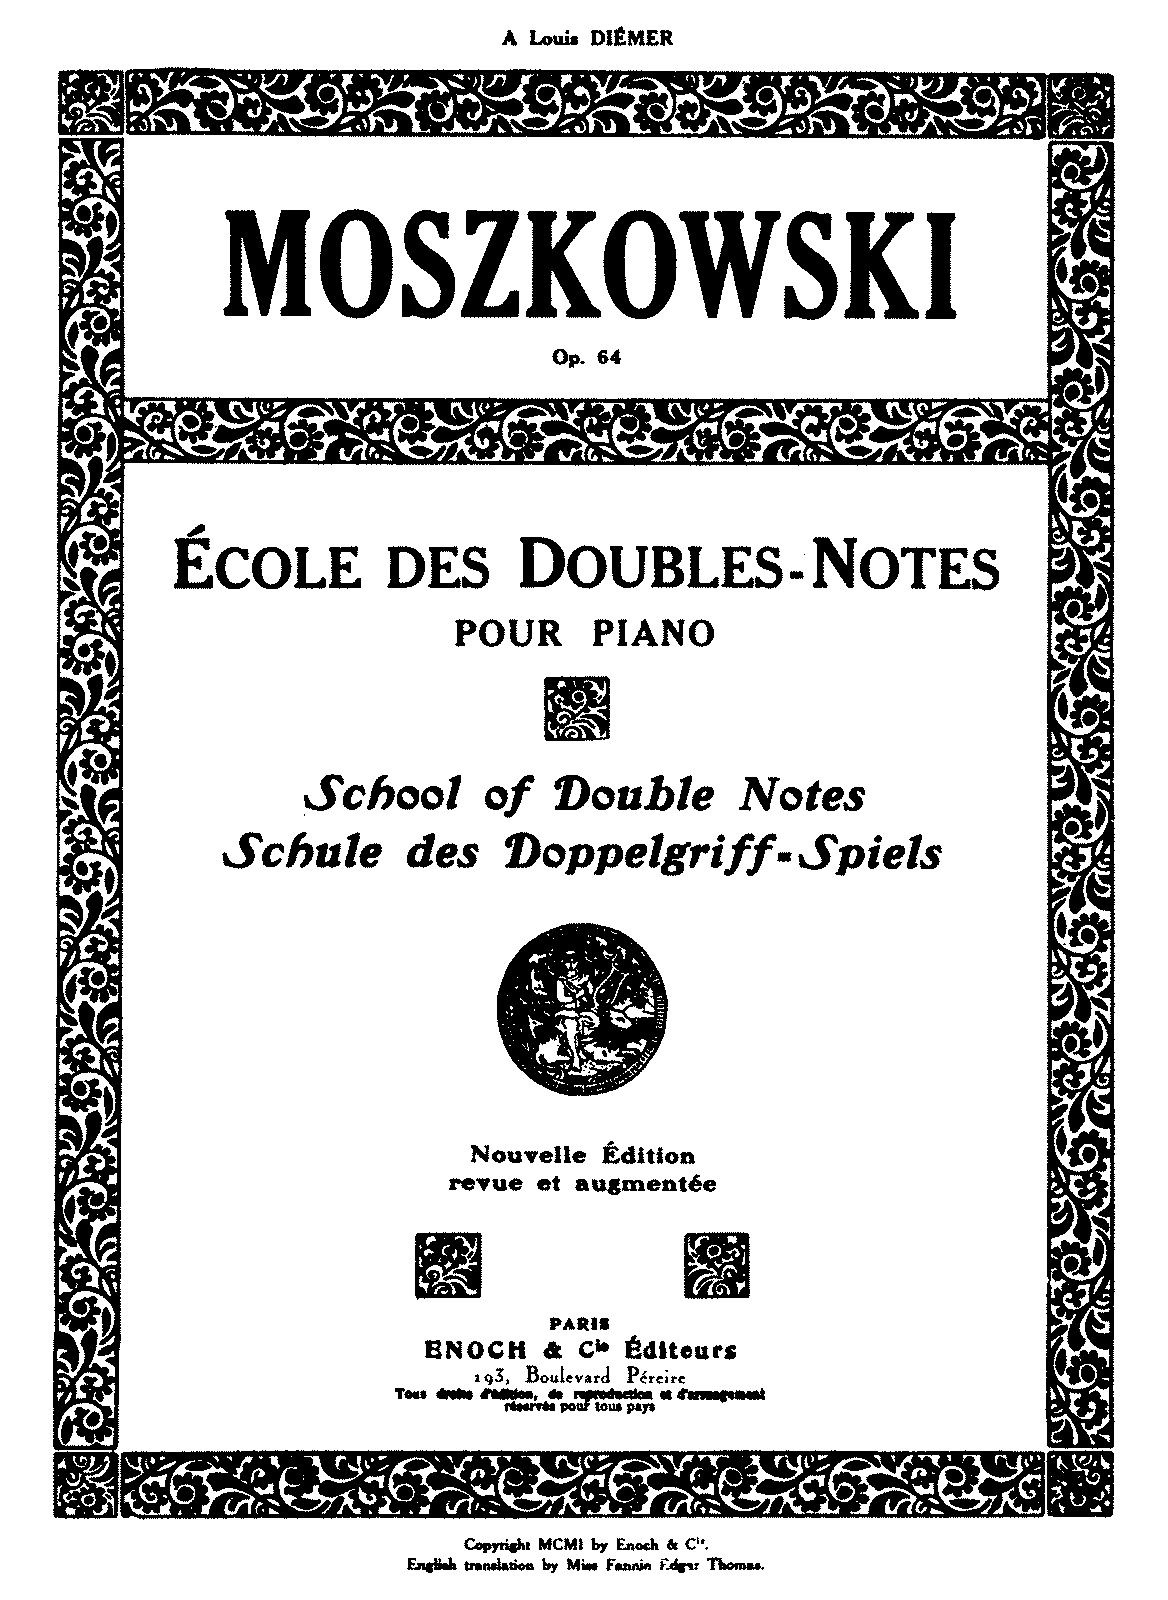 PMLP16621-MMoszkowski School of Double Notes, Op.64 parts1-3 newedition.pdf